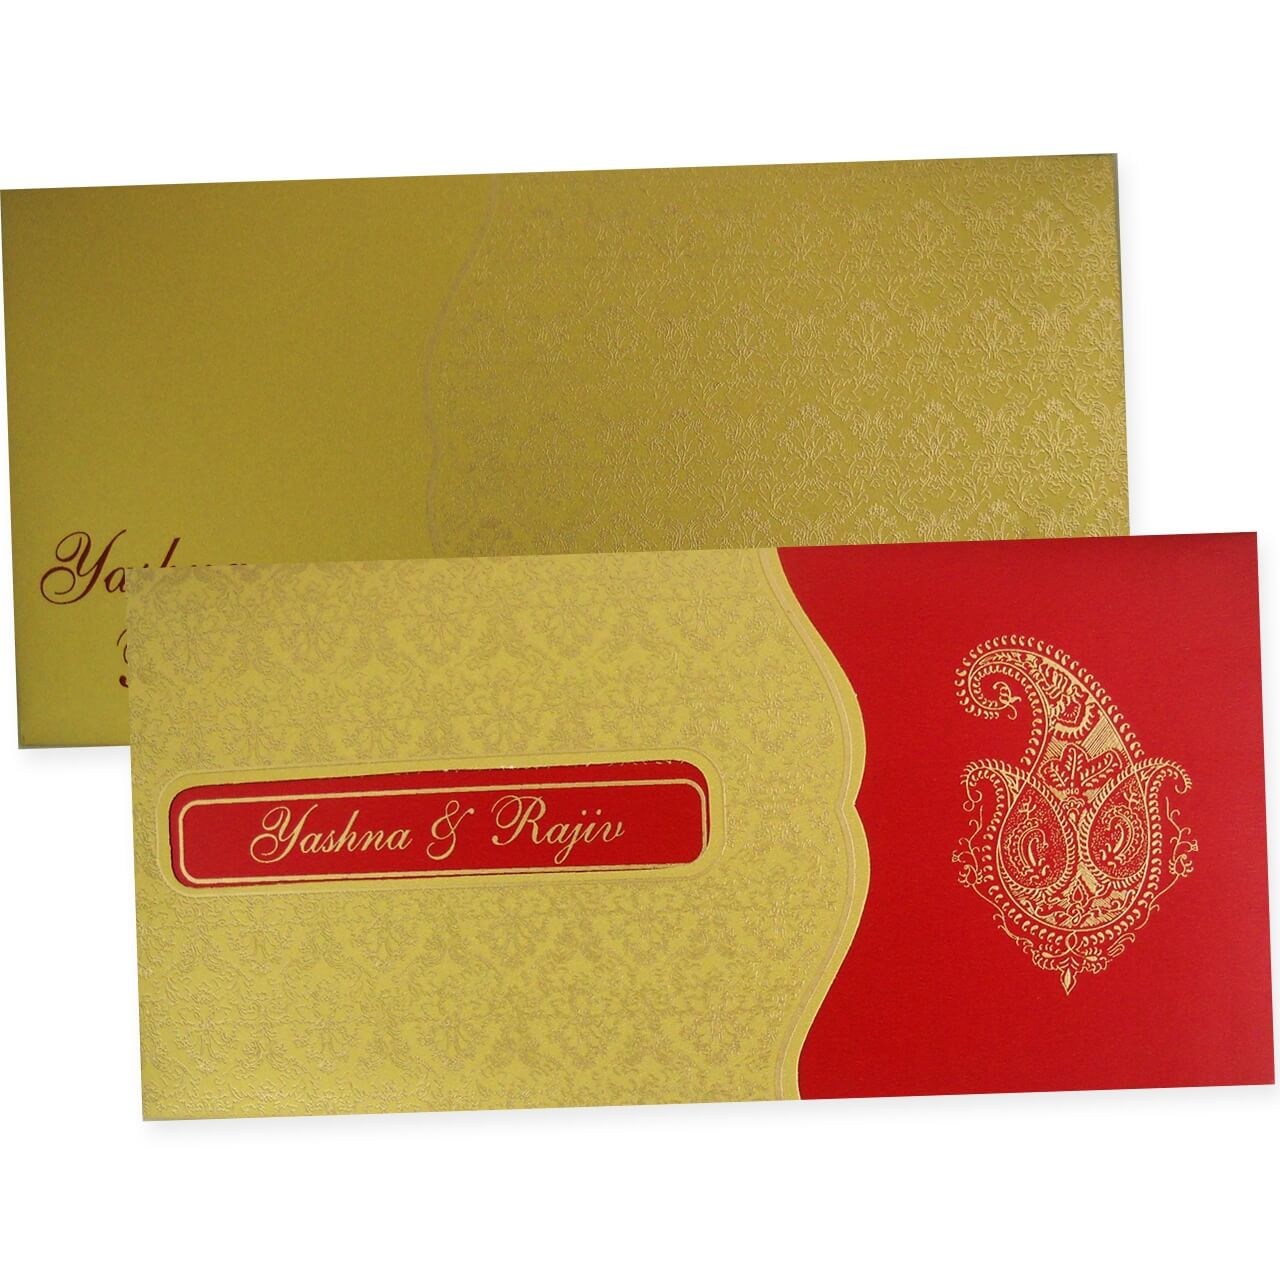 The Wedding Cards Online – Hindu Wedding Invitation Cards Designs